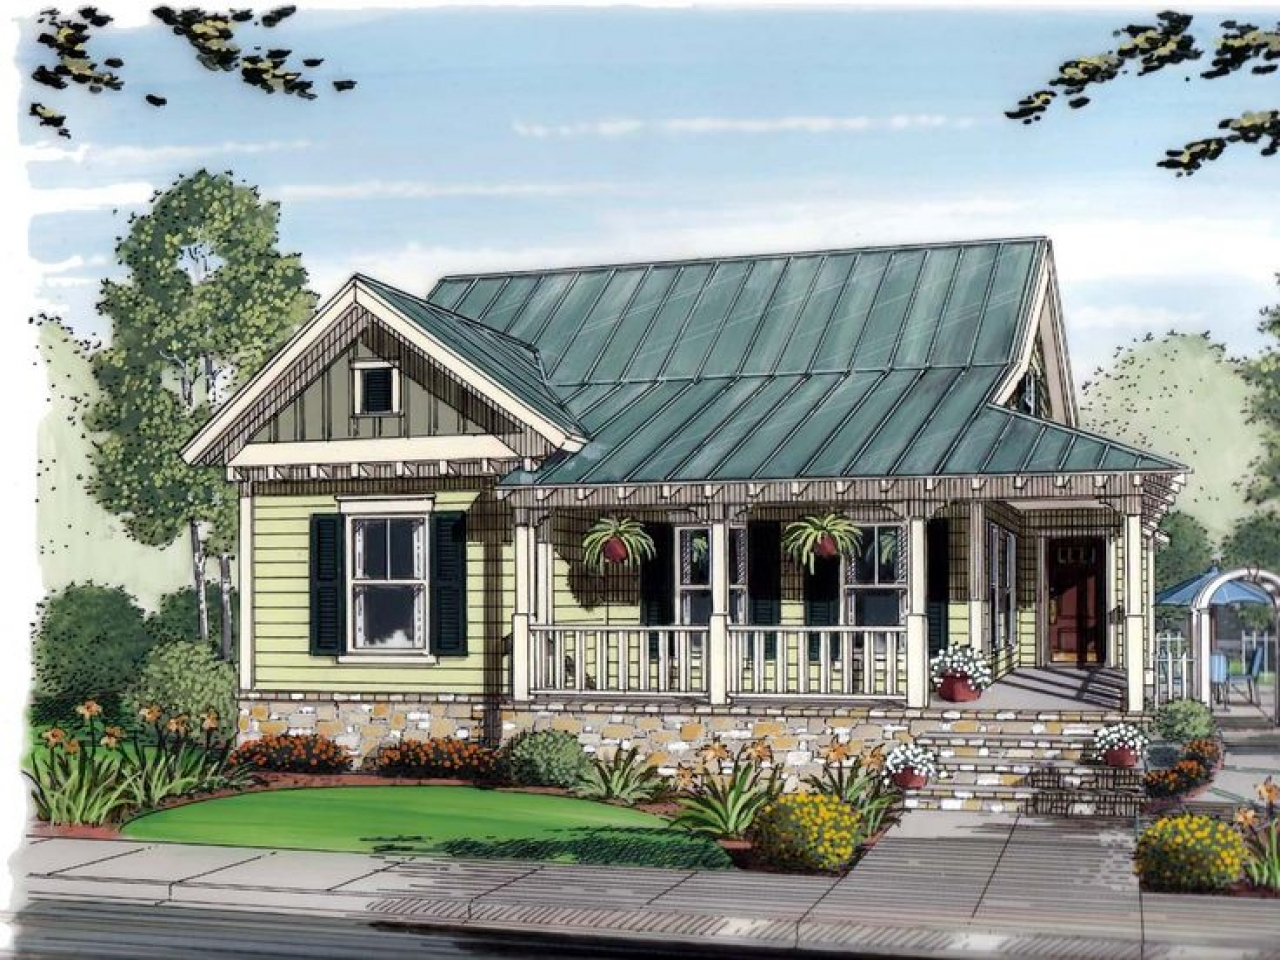 bungalow cottage home plans country house plans small cottage lrg bc50e9592c96b5fb - Download Small House Design Bungalow Type Gif